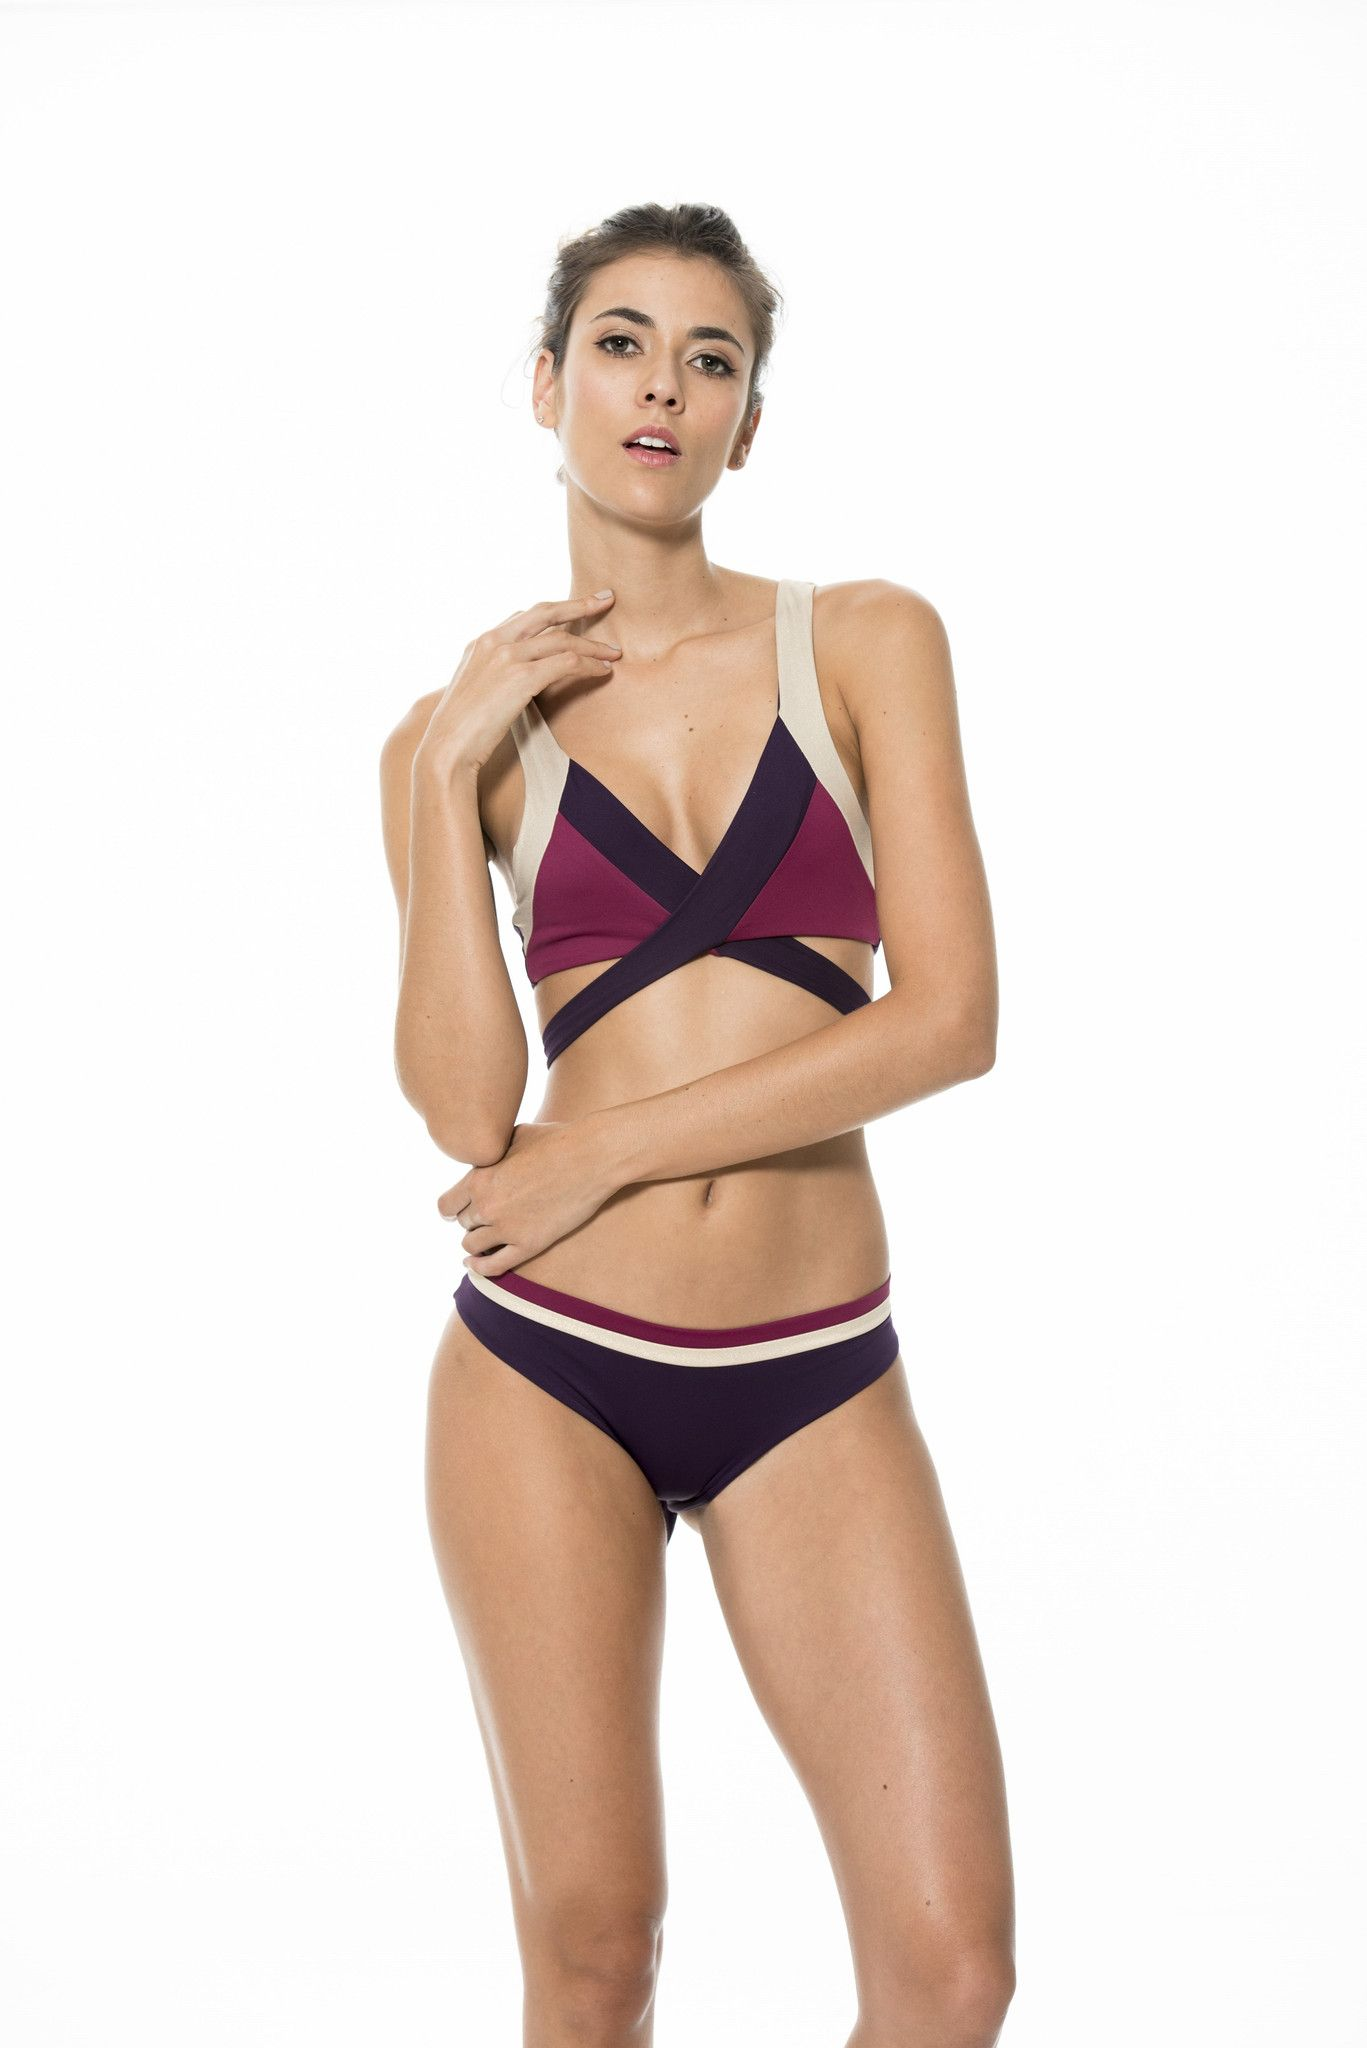 e962a78ee03842 We know how hard it is to choose between 3 of the best selling colors. This  color combination is our absolute favorite. The bikini top wraps around the  ...